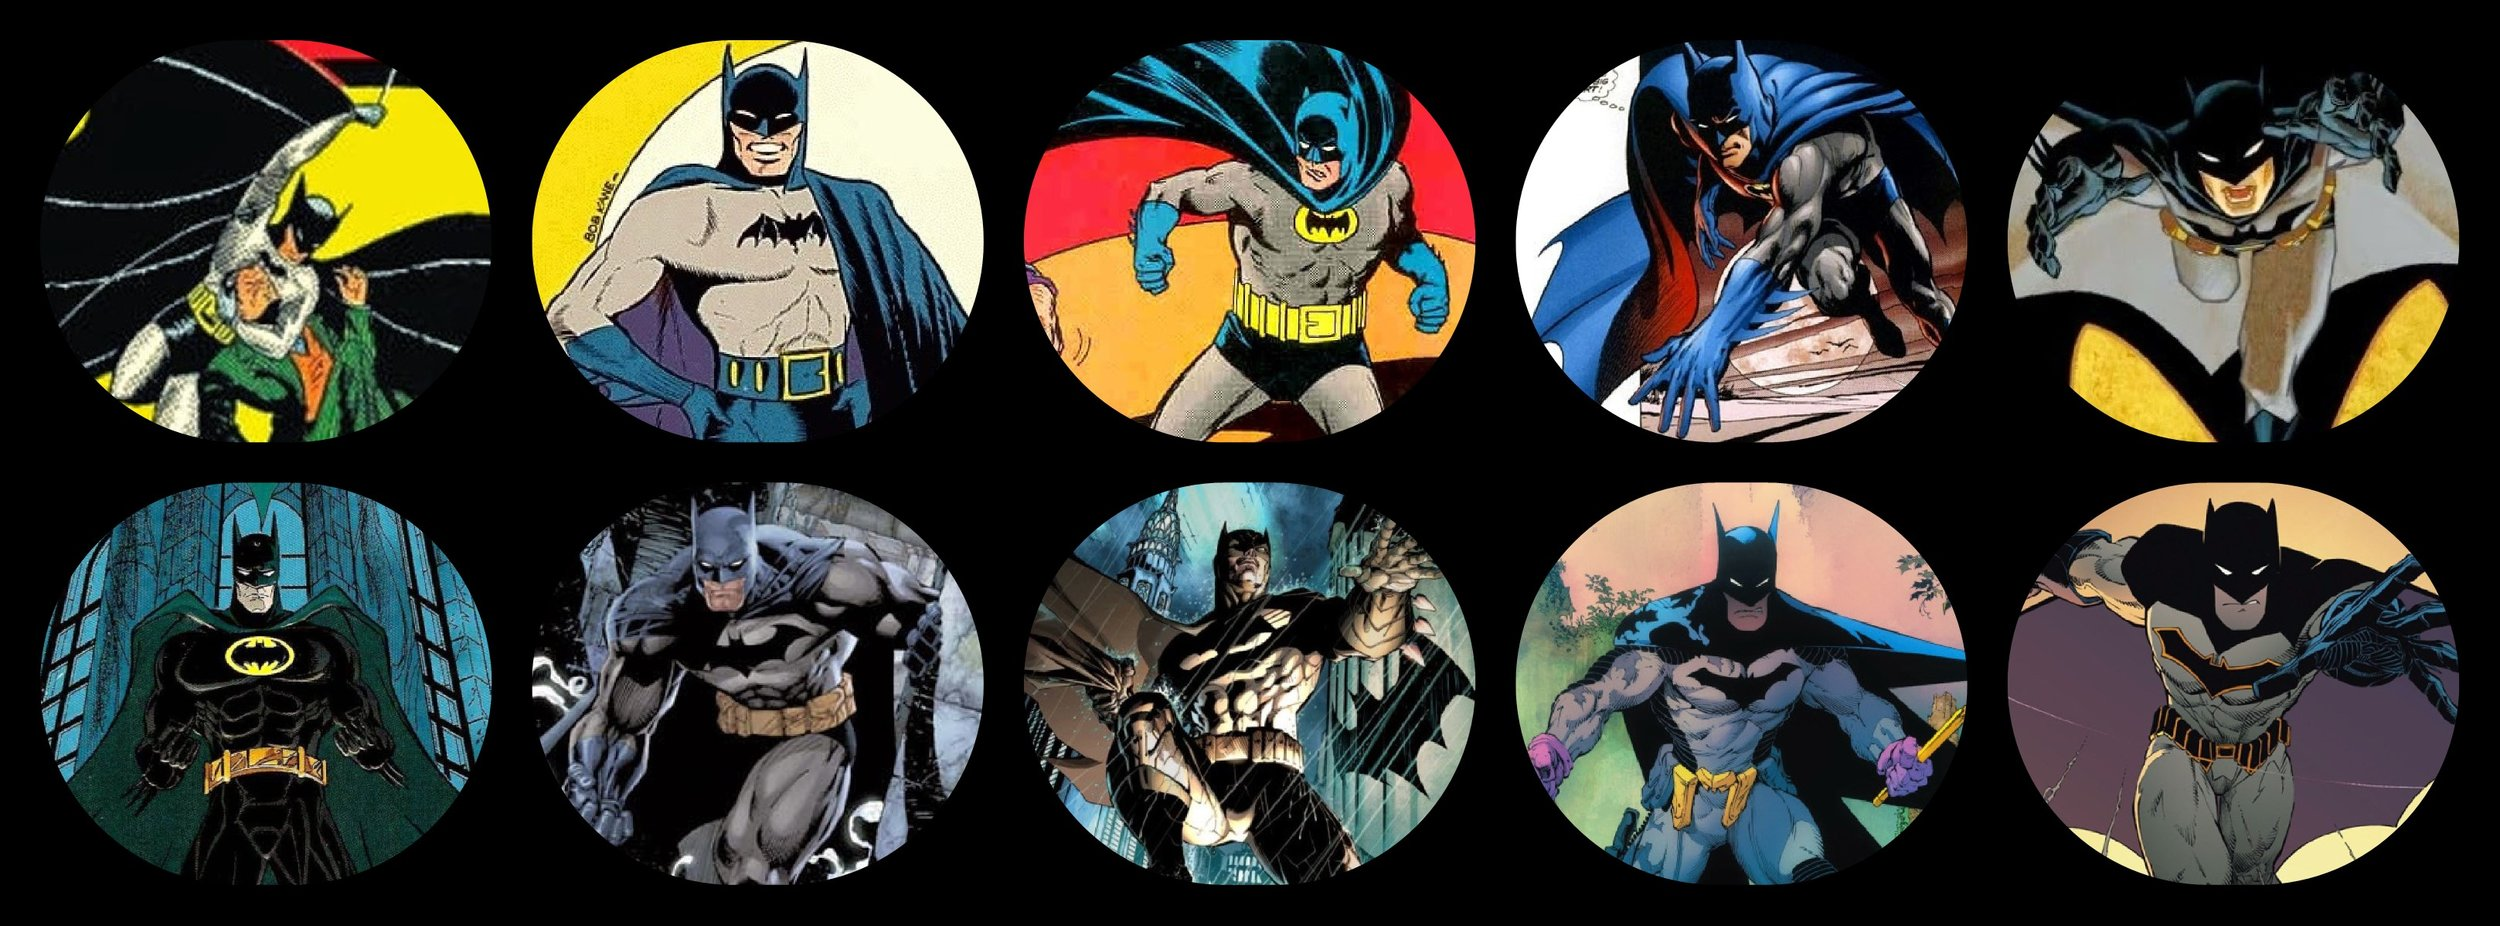 The evolution of comics through the images of Batman